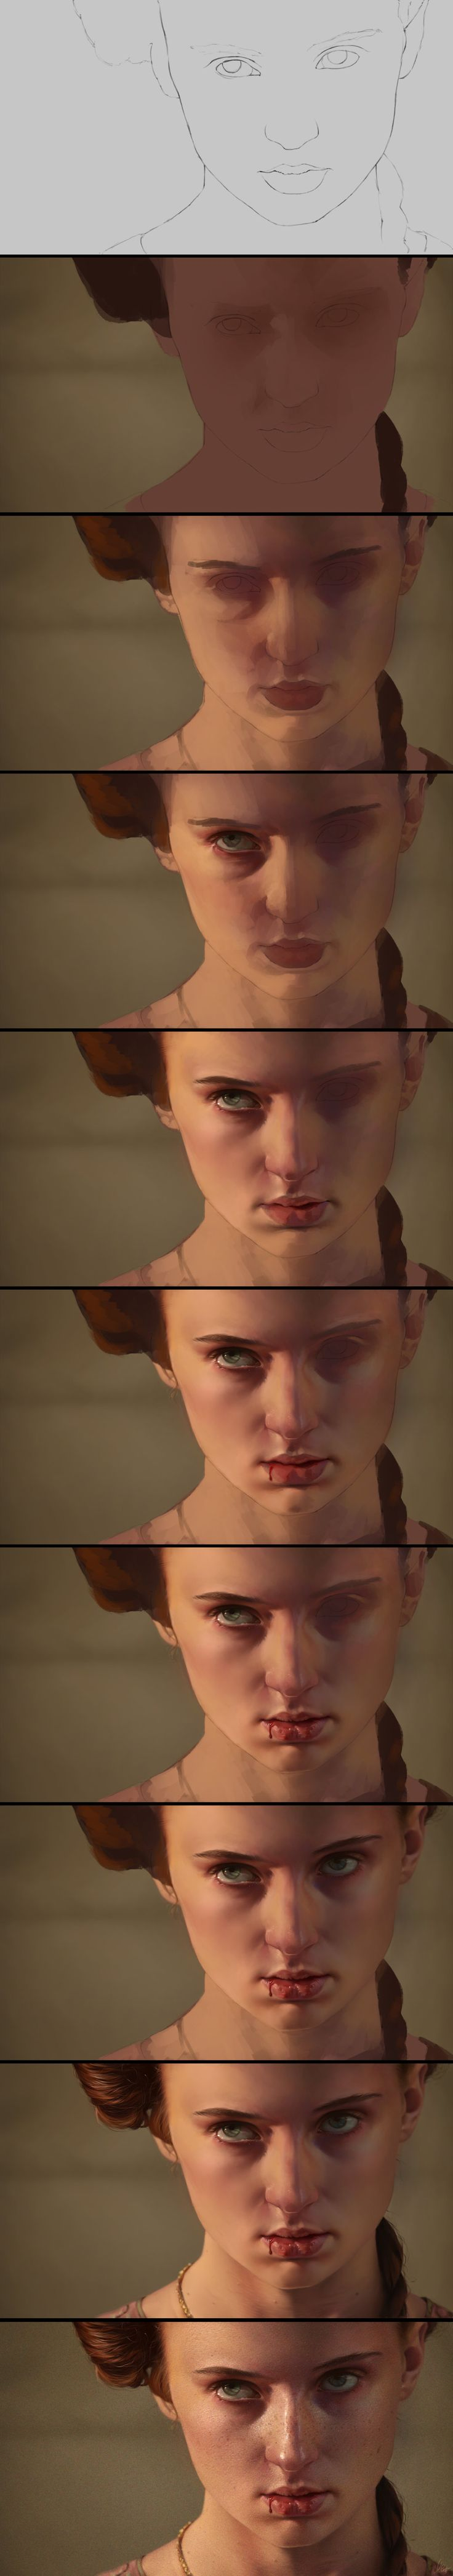 Sansa - Game of Thrones Process by *AaronGriffinArt on deviantART Very interesting to watch the progression